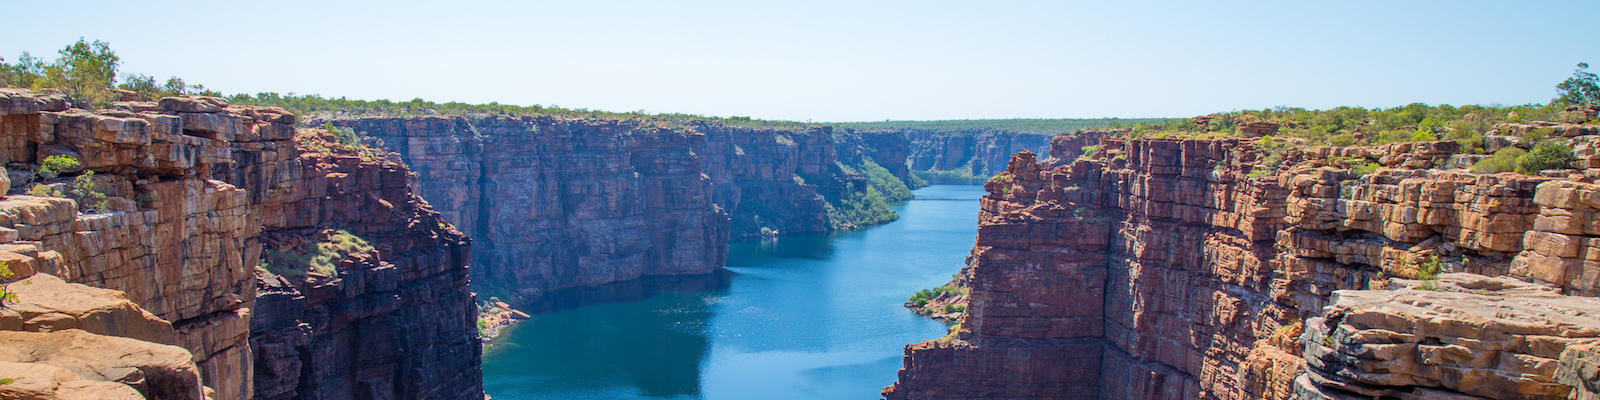 The Kimberley has so much to discover on your next cruise.